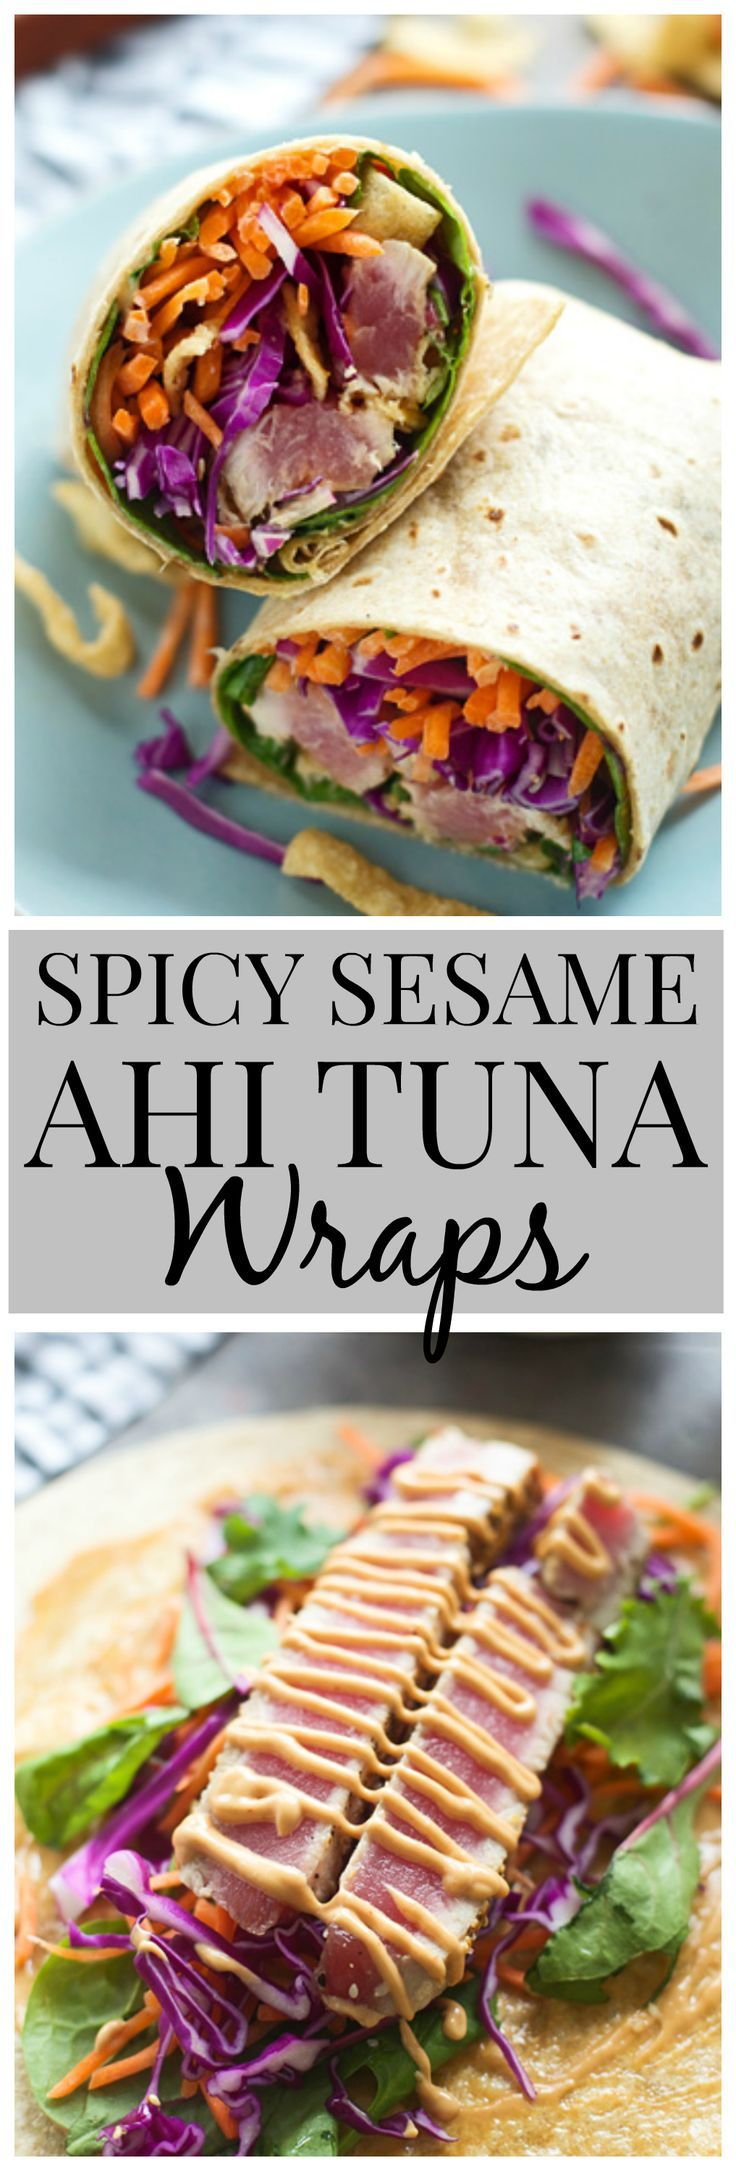 Spicy Sesame Ahi Tuna Wraps #UpgradeWithHellmanns #sponsored